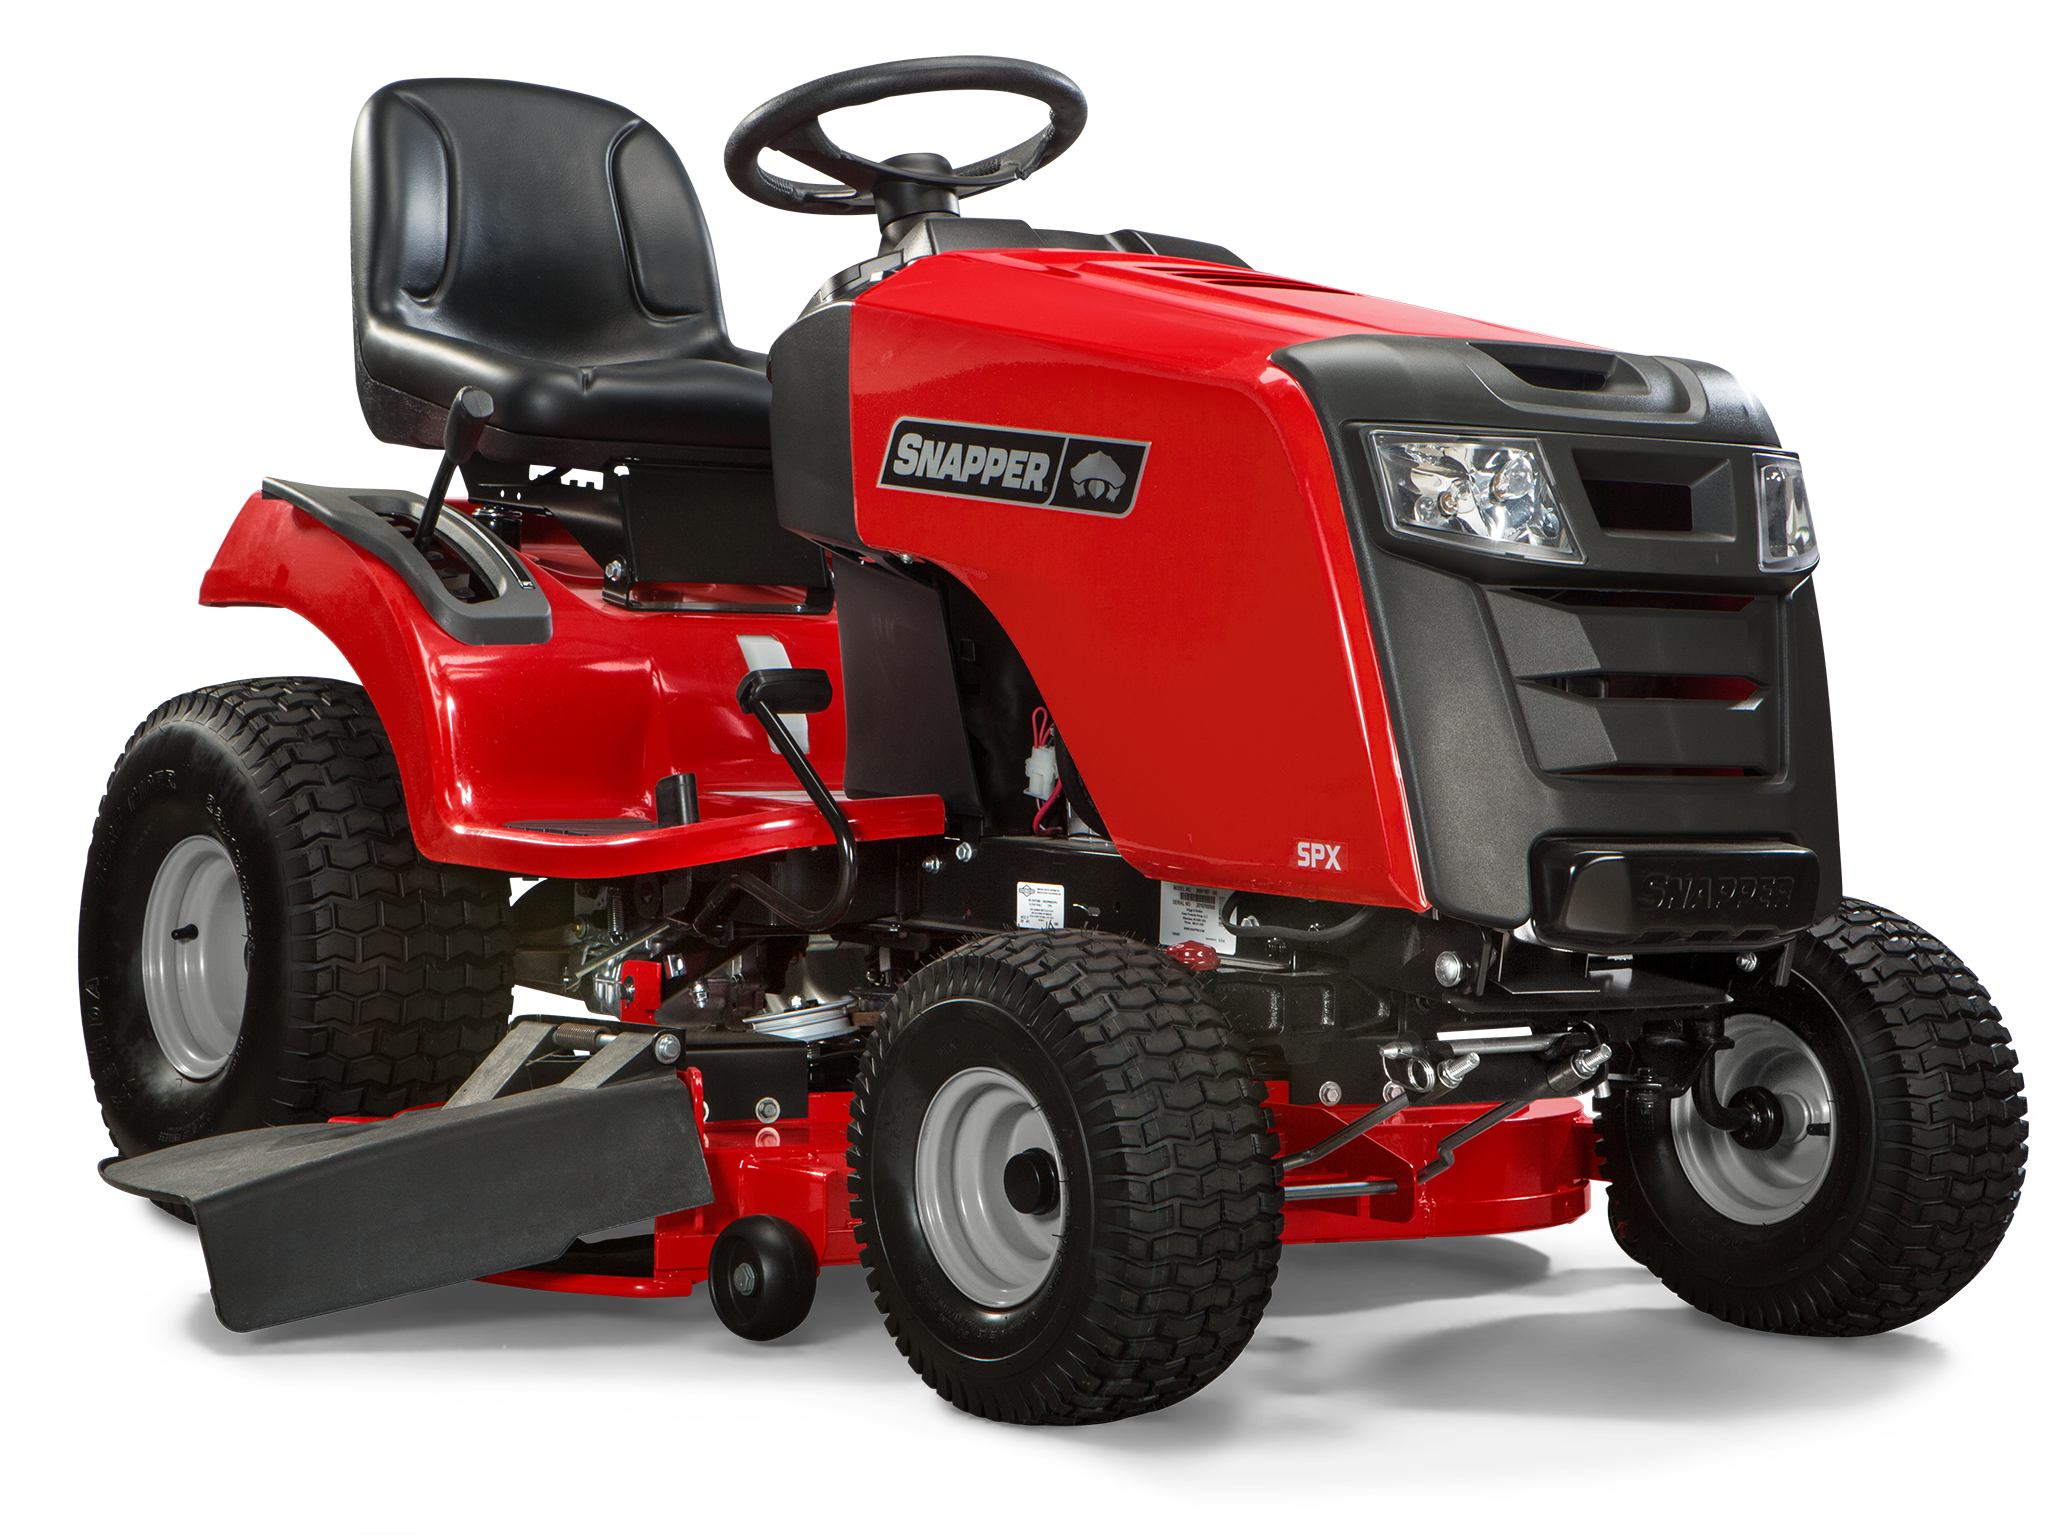 Snapper spx 42 fab lawn tractor the boys pinterest tractor 2016 snapper spx 42 lawn tractor fabricated deck 23hp briggs stratton professional series engine model 2691281 fandeluxe Choice Image